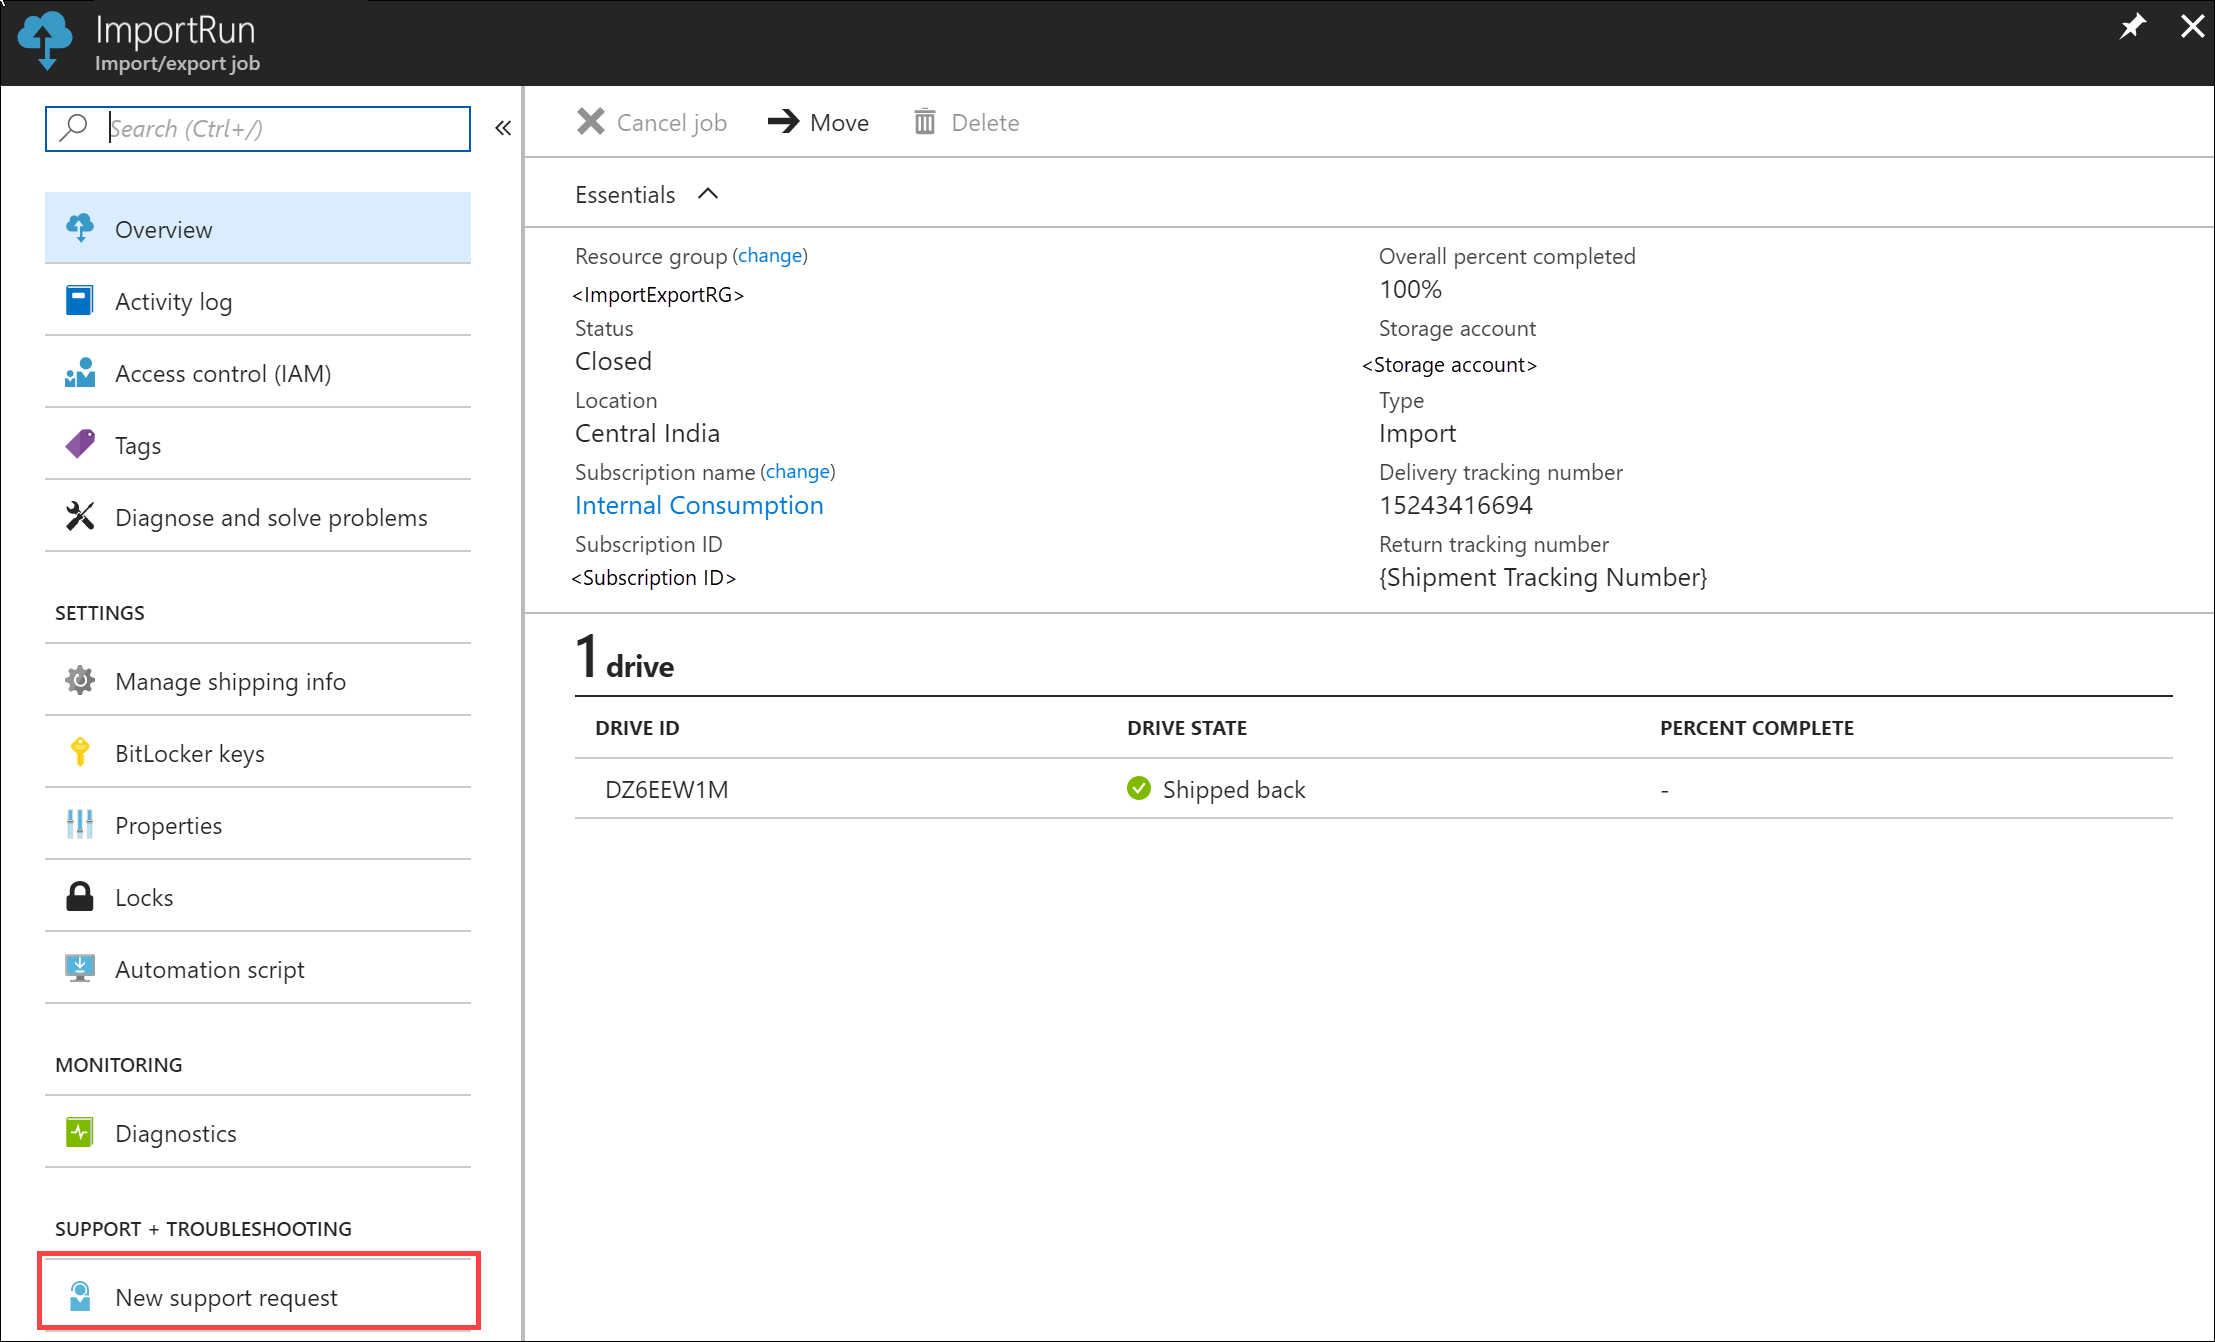 Create Support ticket or case for Azure Import/Export job | Microsoft Docs